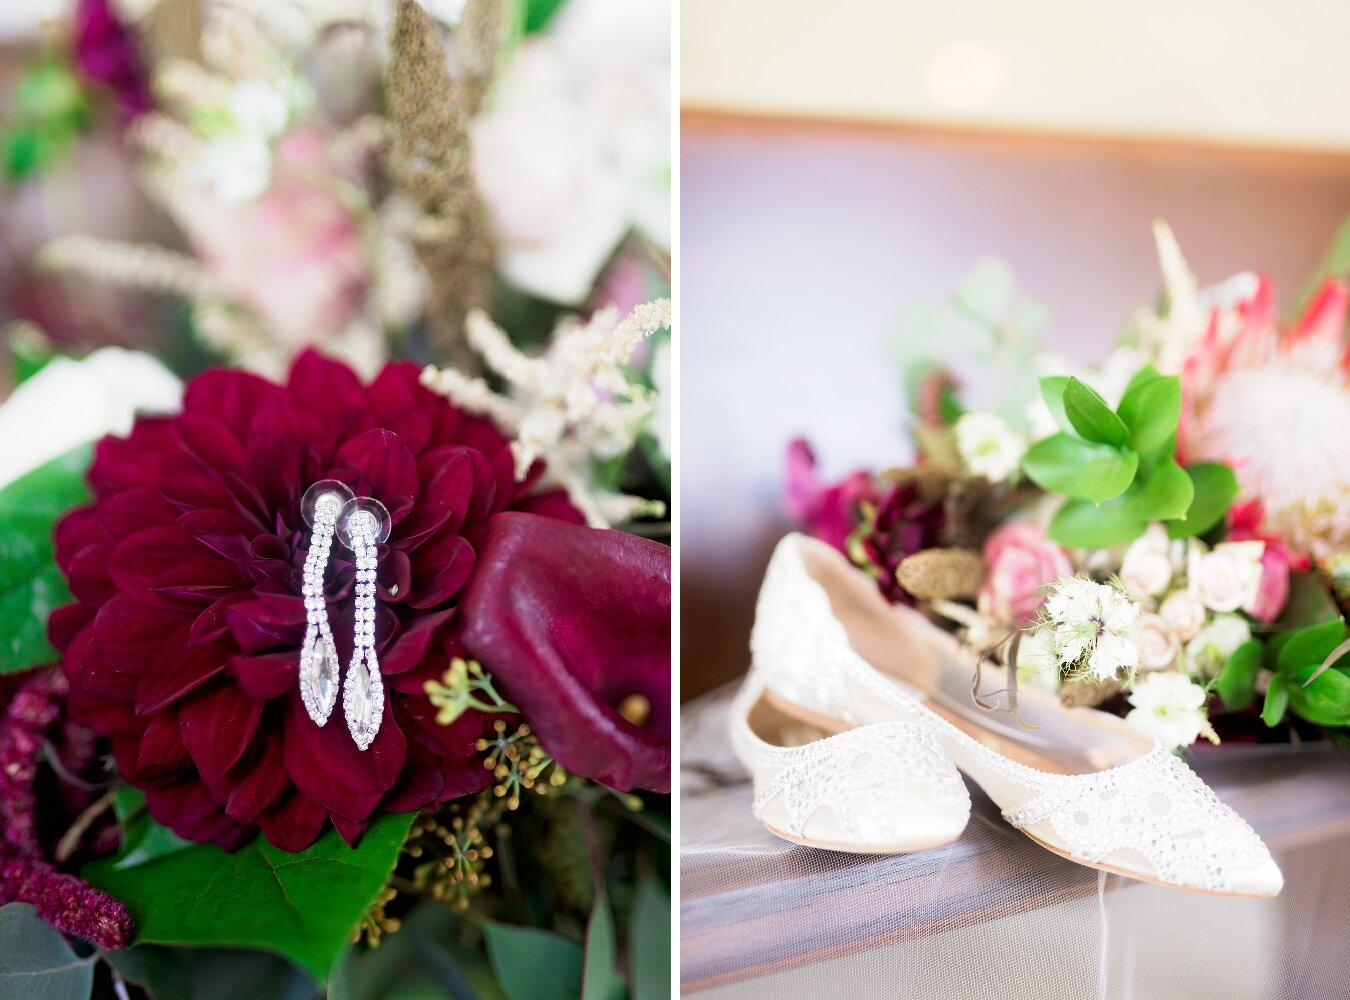 New Braunfels Wedding- Pharris Photography- Details- Adrianna + Kevin- Jewelry- Earrings- Wedding Shoes